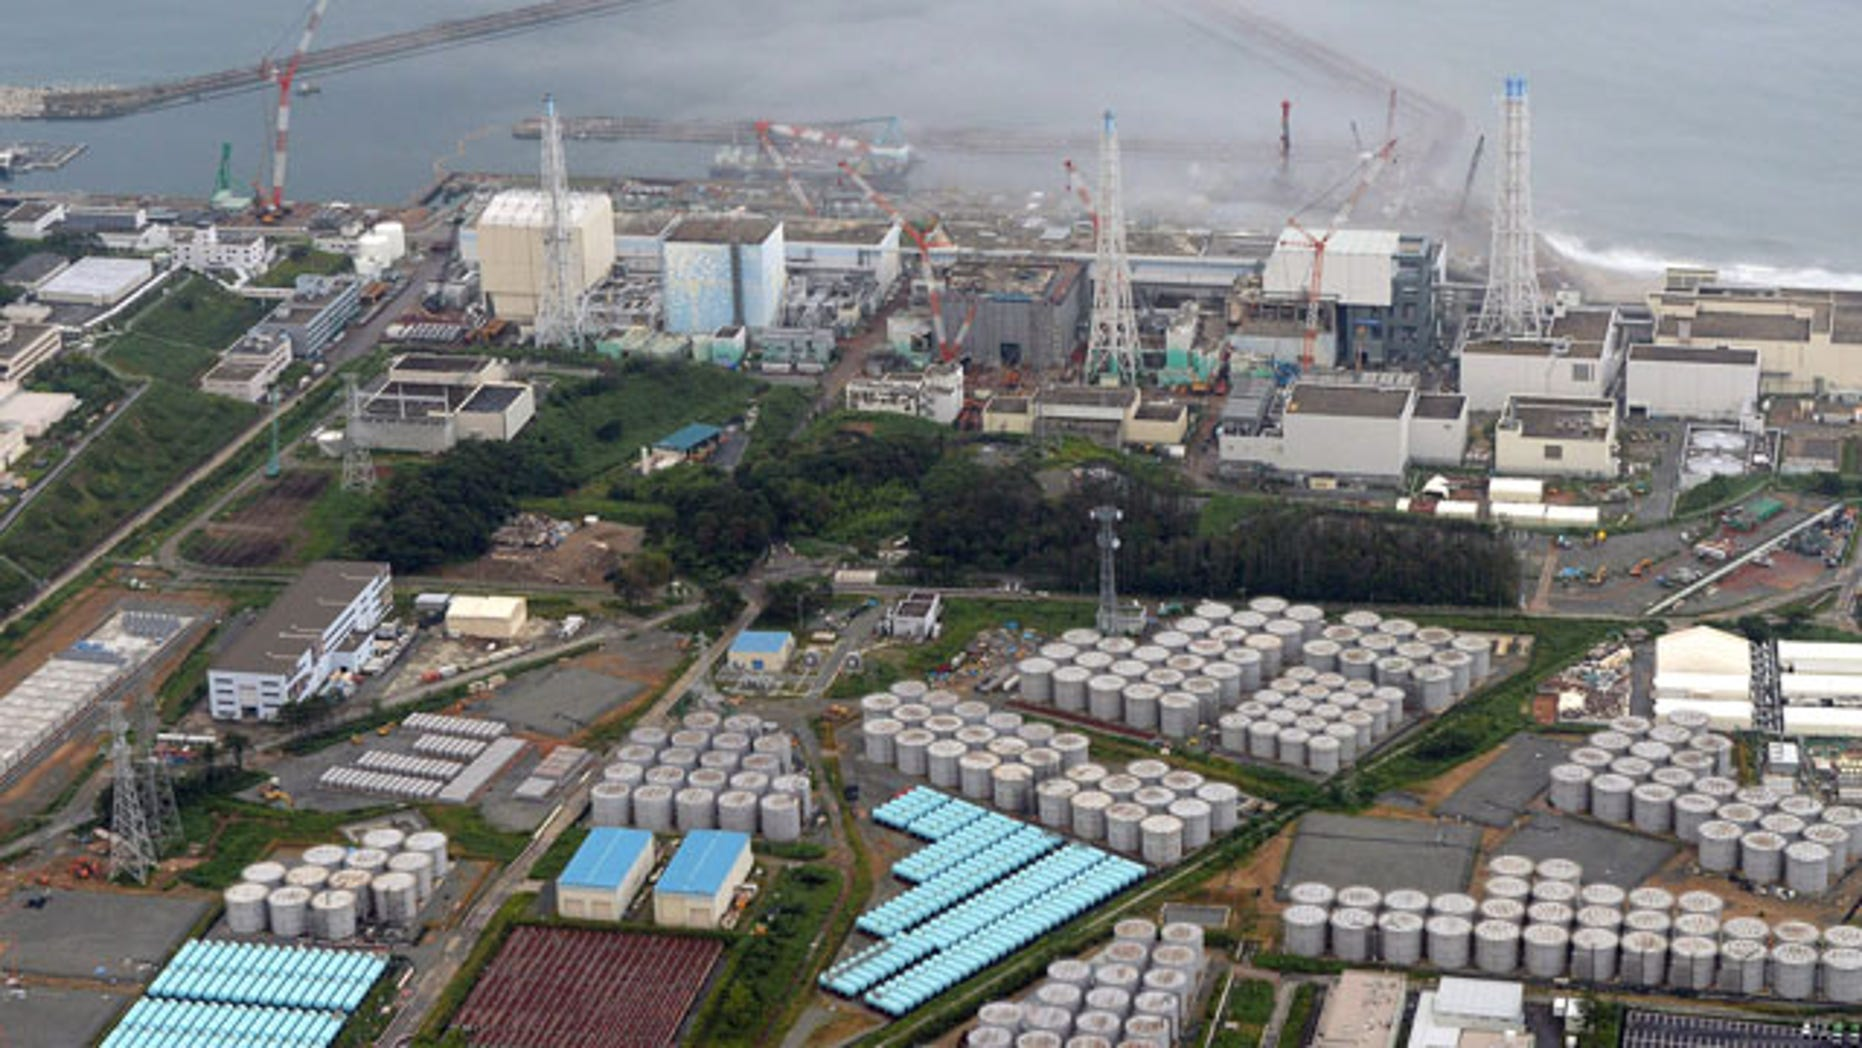 """FILE - This Aug. 20, 2013 aerial file photo shows the Fukushima Dai-ichi nuclear plant at Okuma in Fukushima prefecture, northern Japan. Japan's nuclear regulator has upgraded the rating of a leak of radiation-contaminated water at its tsunami-wrecked nuclear plant to a """"serious incident"""" on an international scale. (AP Photo/Kyodo News, File)"""